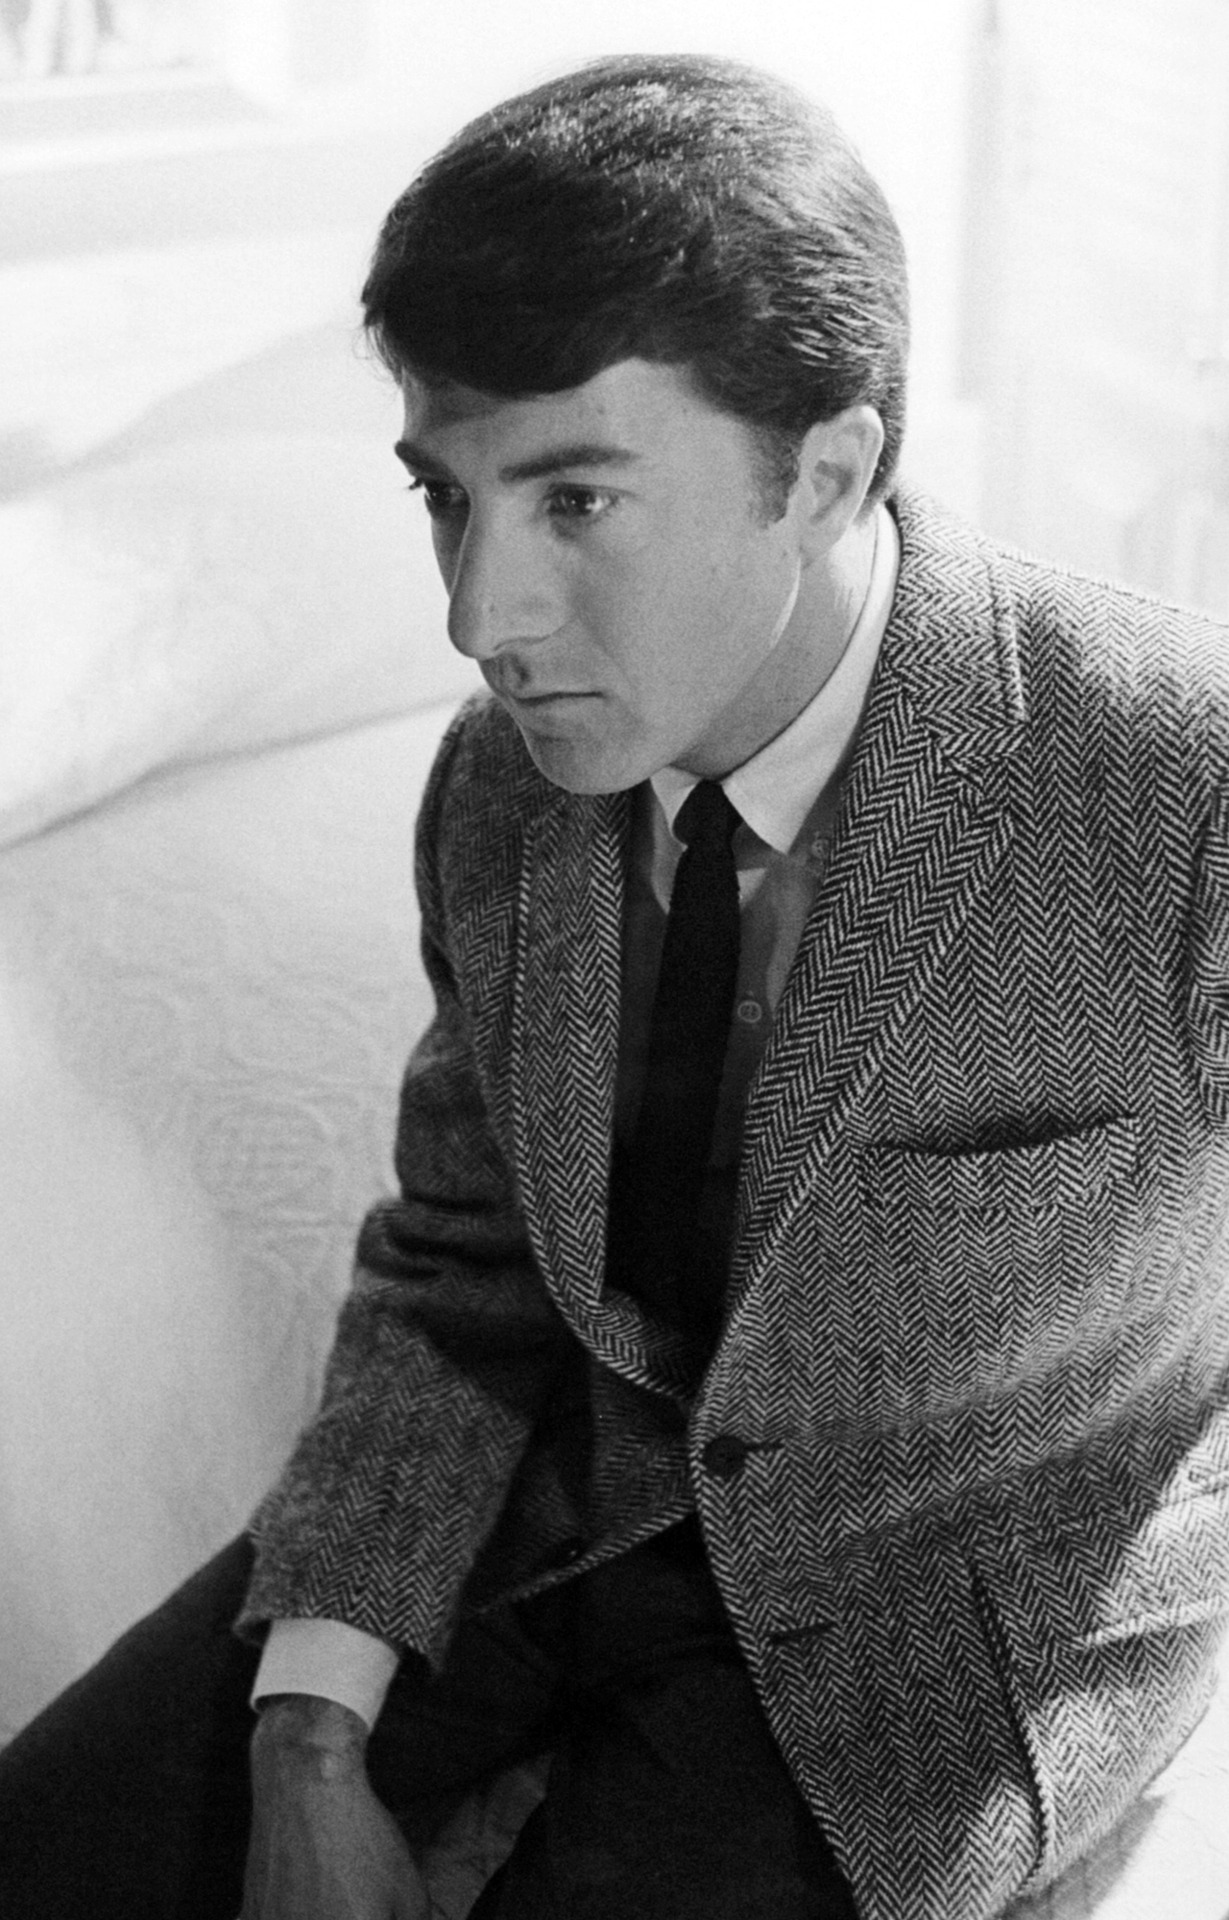 B&W Herringbone Tweed: Nothing More Classic For Fall. Dustin Hoffman.